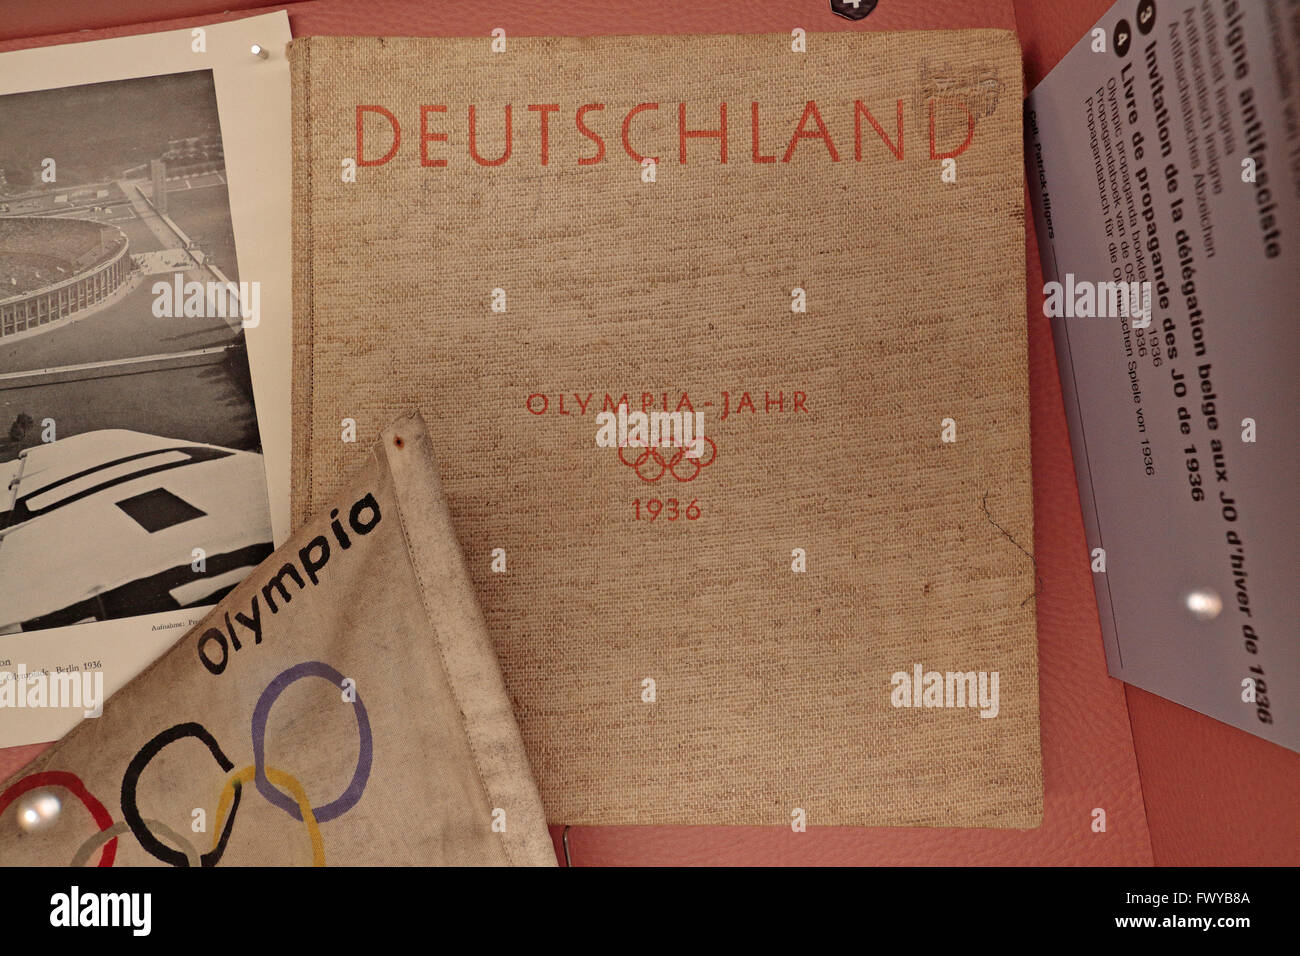 An Olympic propaganda book from the 1936 Berlin games in the Bastogne War Museum, Bastogne, Belgium. - Stock Image